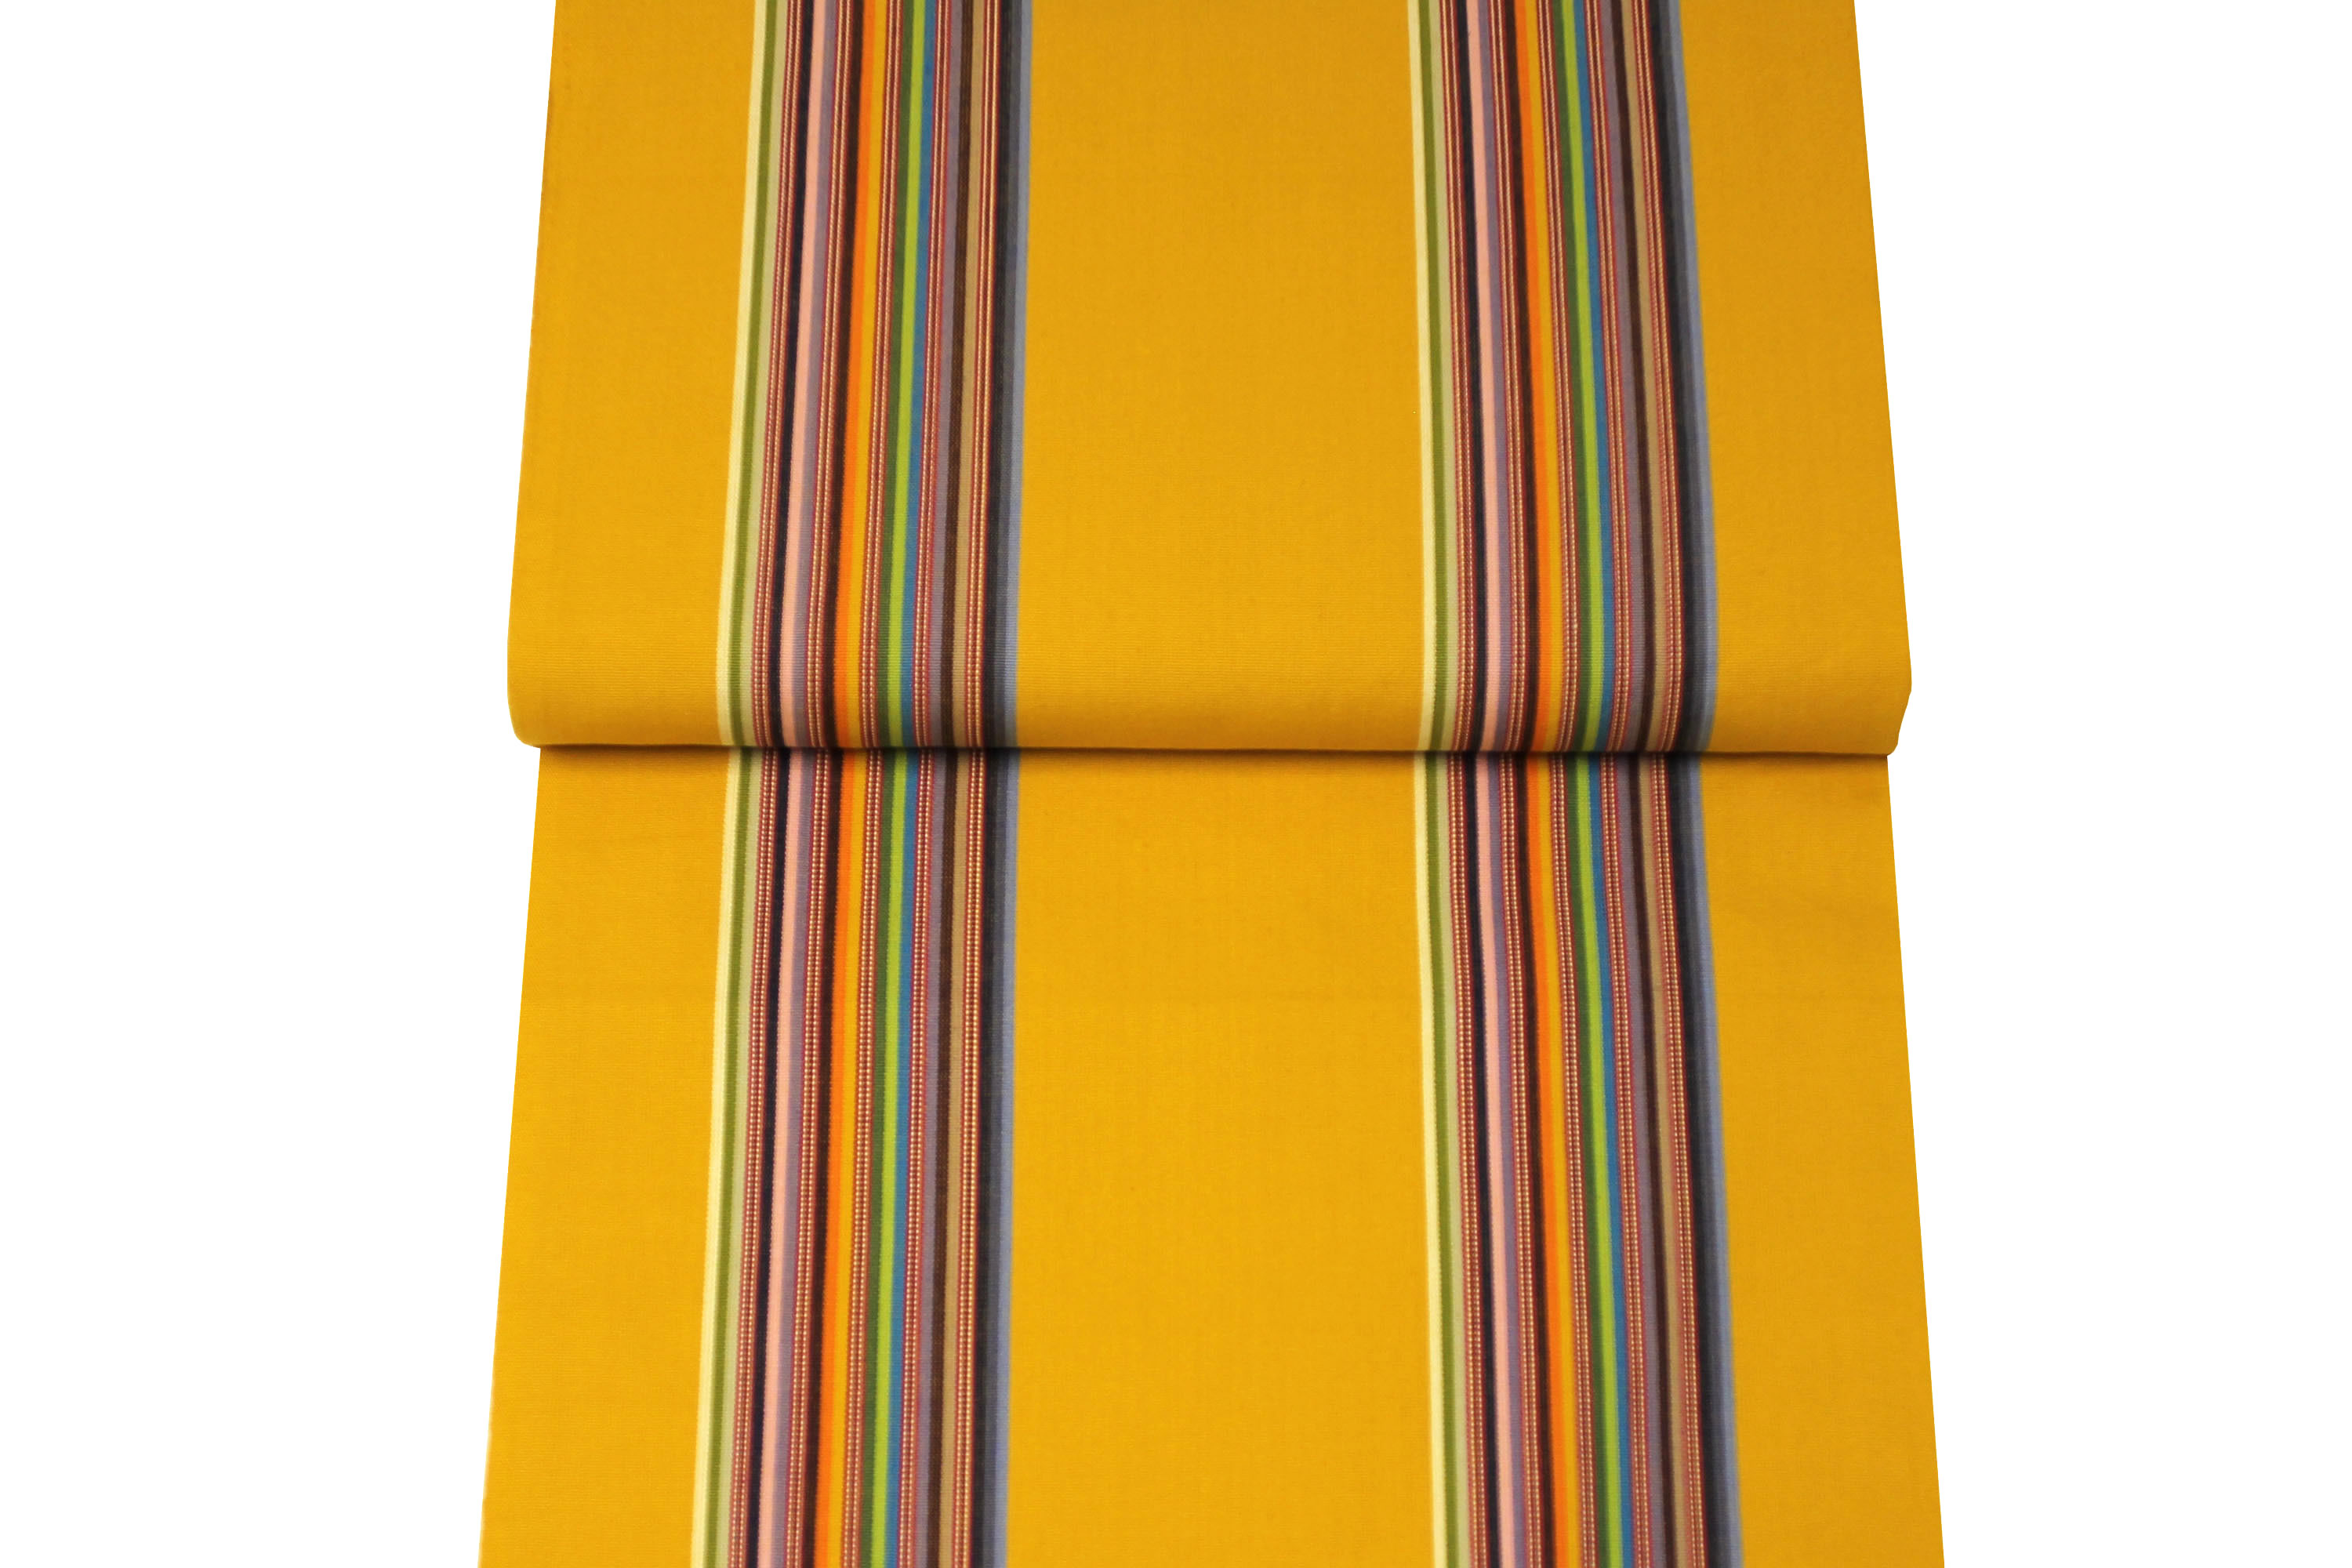 Yellow Deckchair Canvas Fabric | Striped Deck Chair Fabrics | Butterfly Stripe